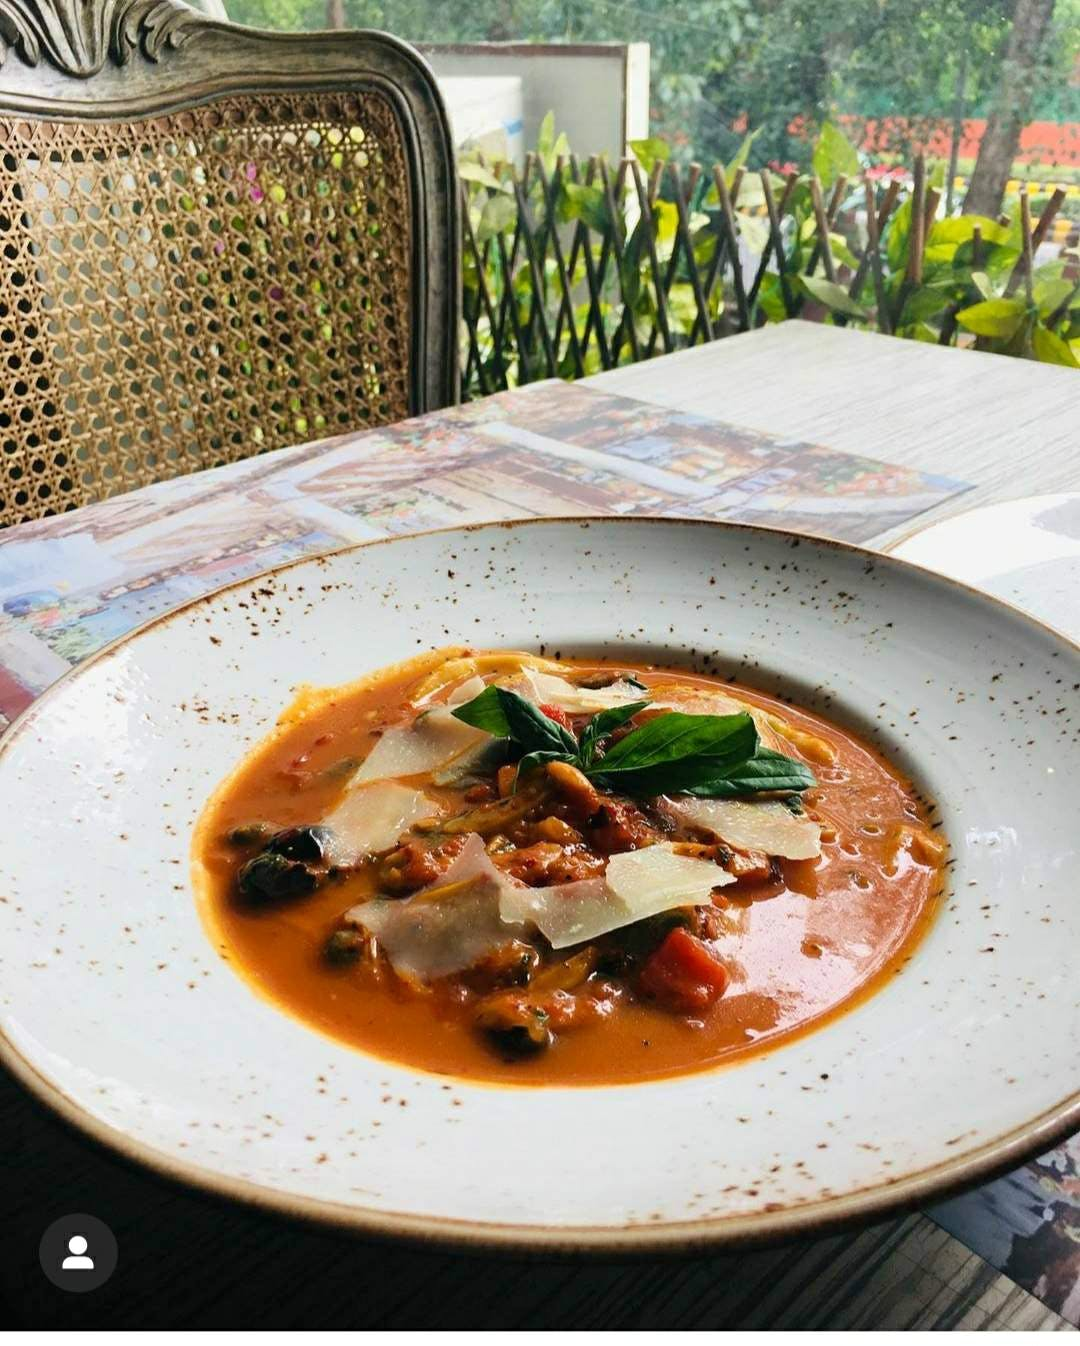 Dish,Food,Cuisine,Ingredient,Produce,Recipe,Meat,Red curry,Soup,Lunch